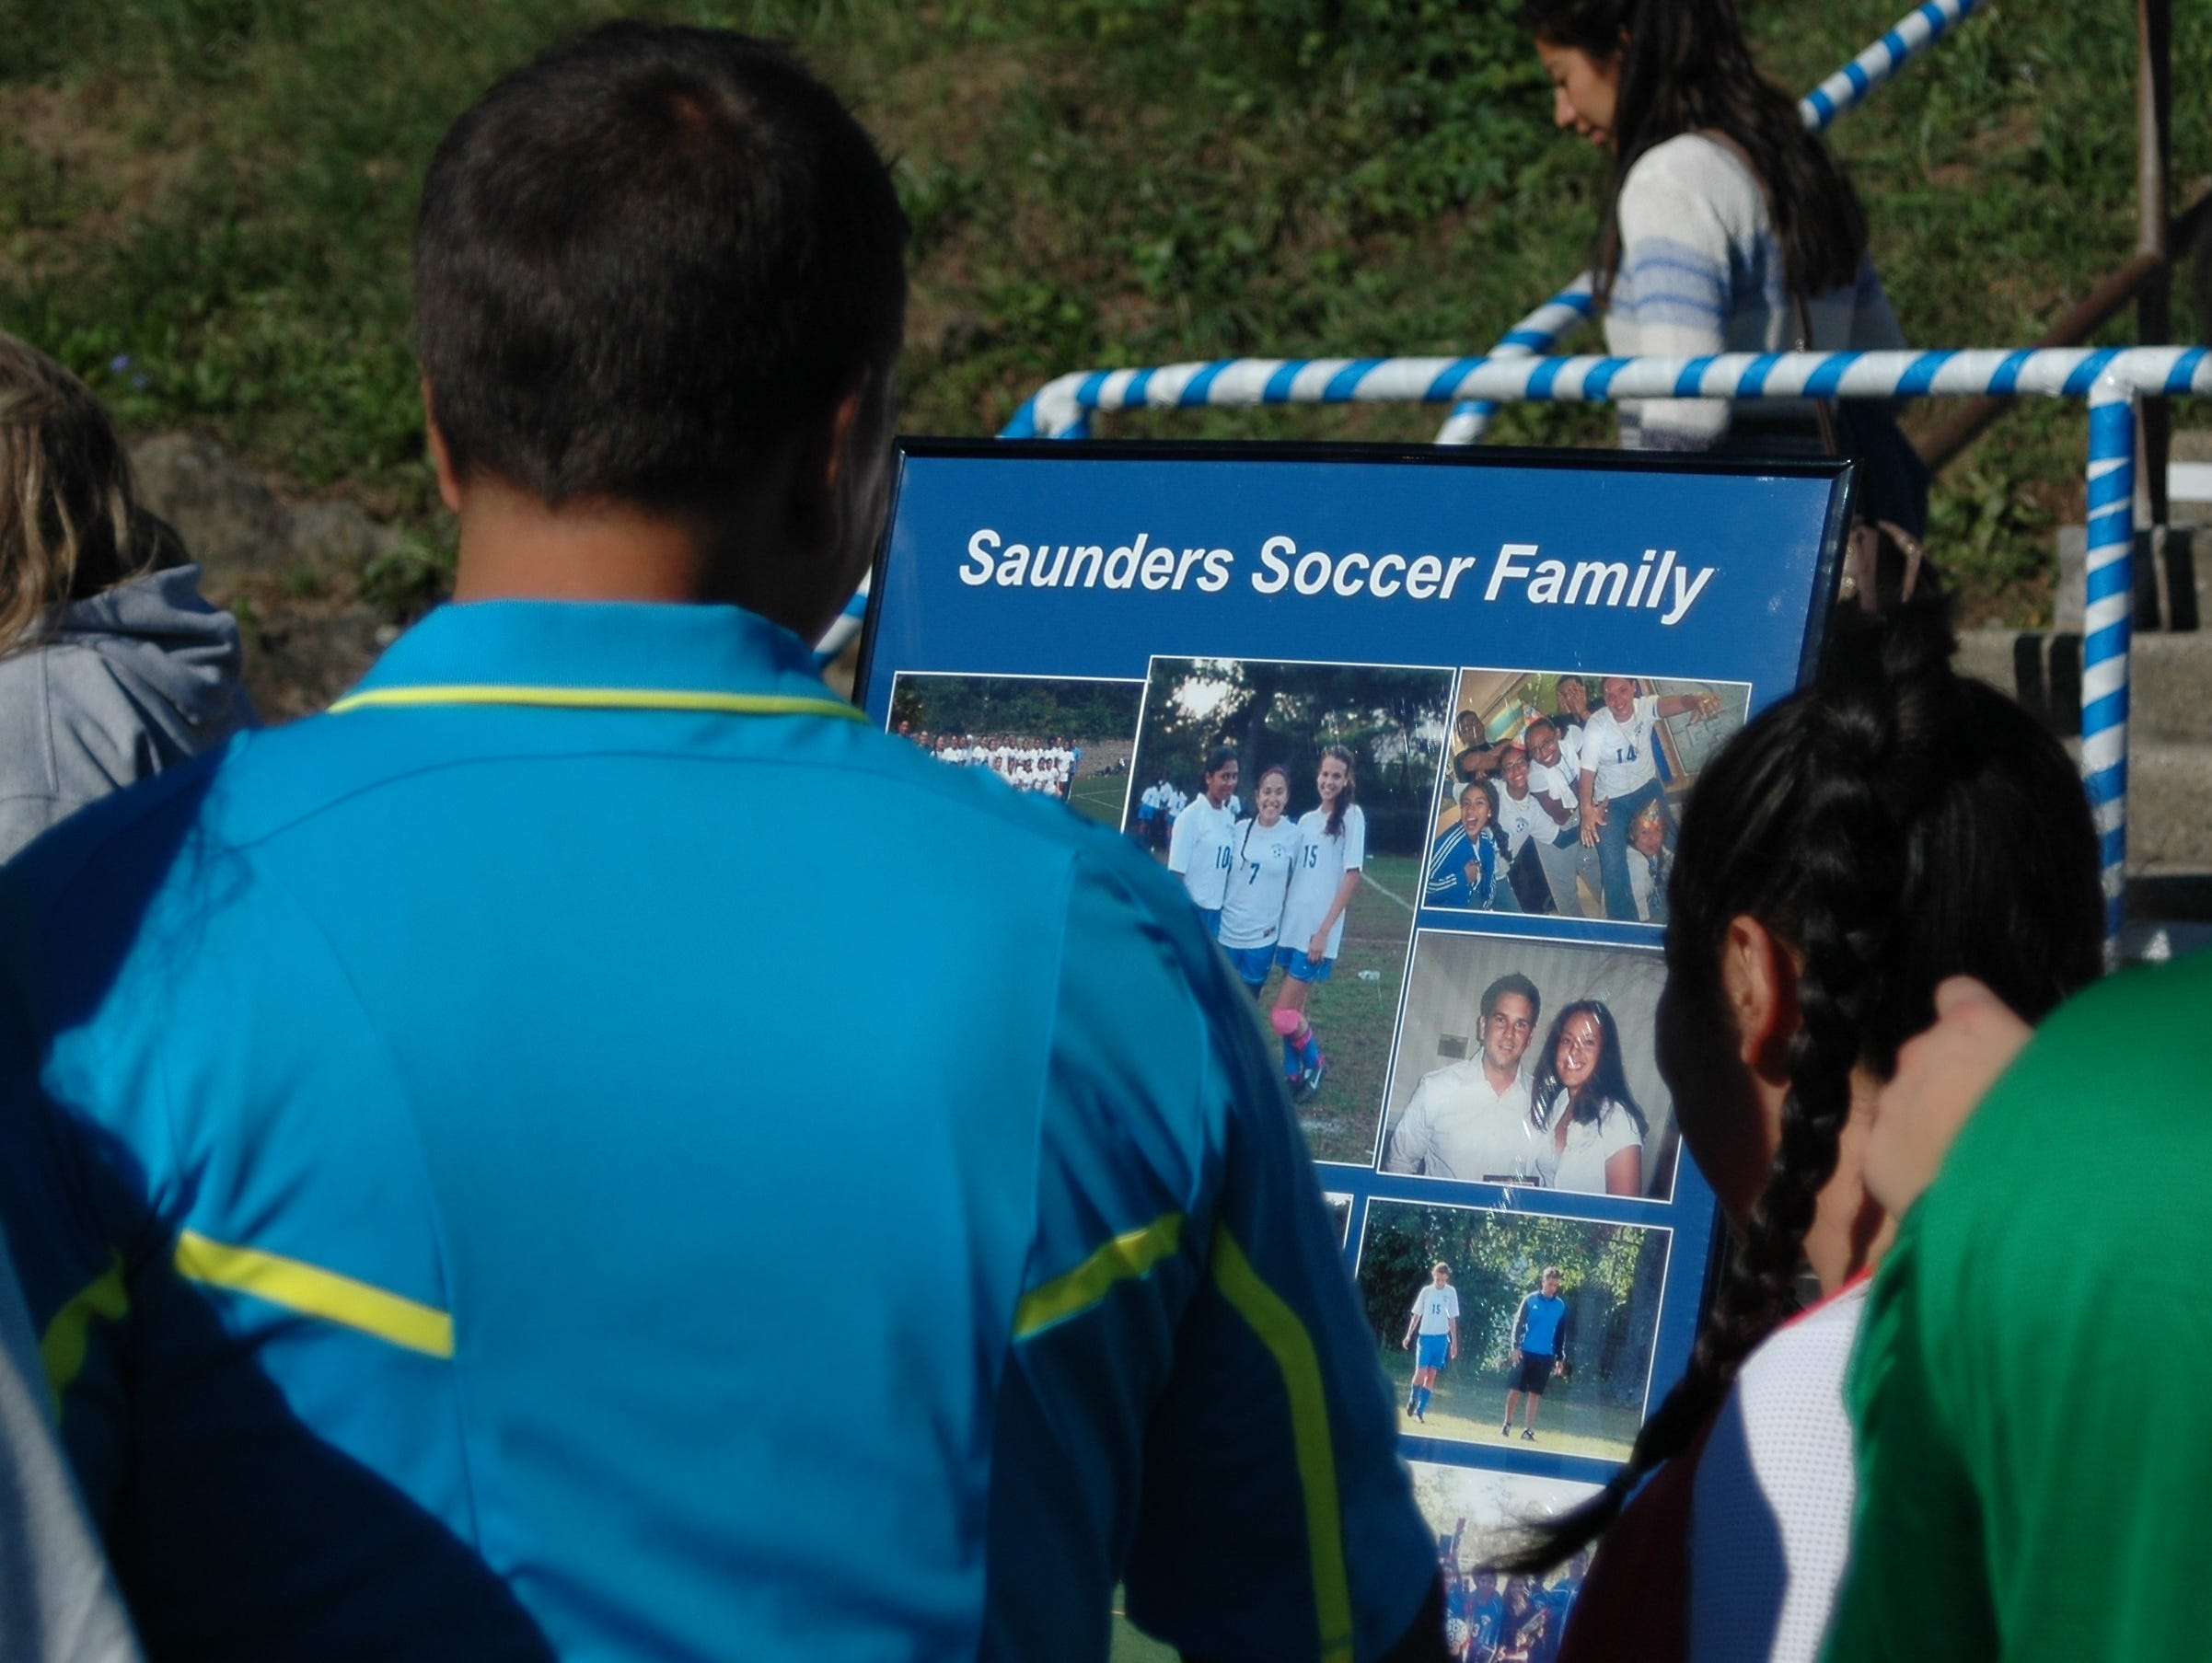 Longtime Saunders girls soccer coach Carlo Mitrione views a framed collection of pictures made by his former players during the school's annual alumni soccer game on Saturday, October 10th, 2015.